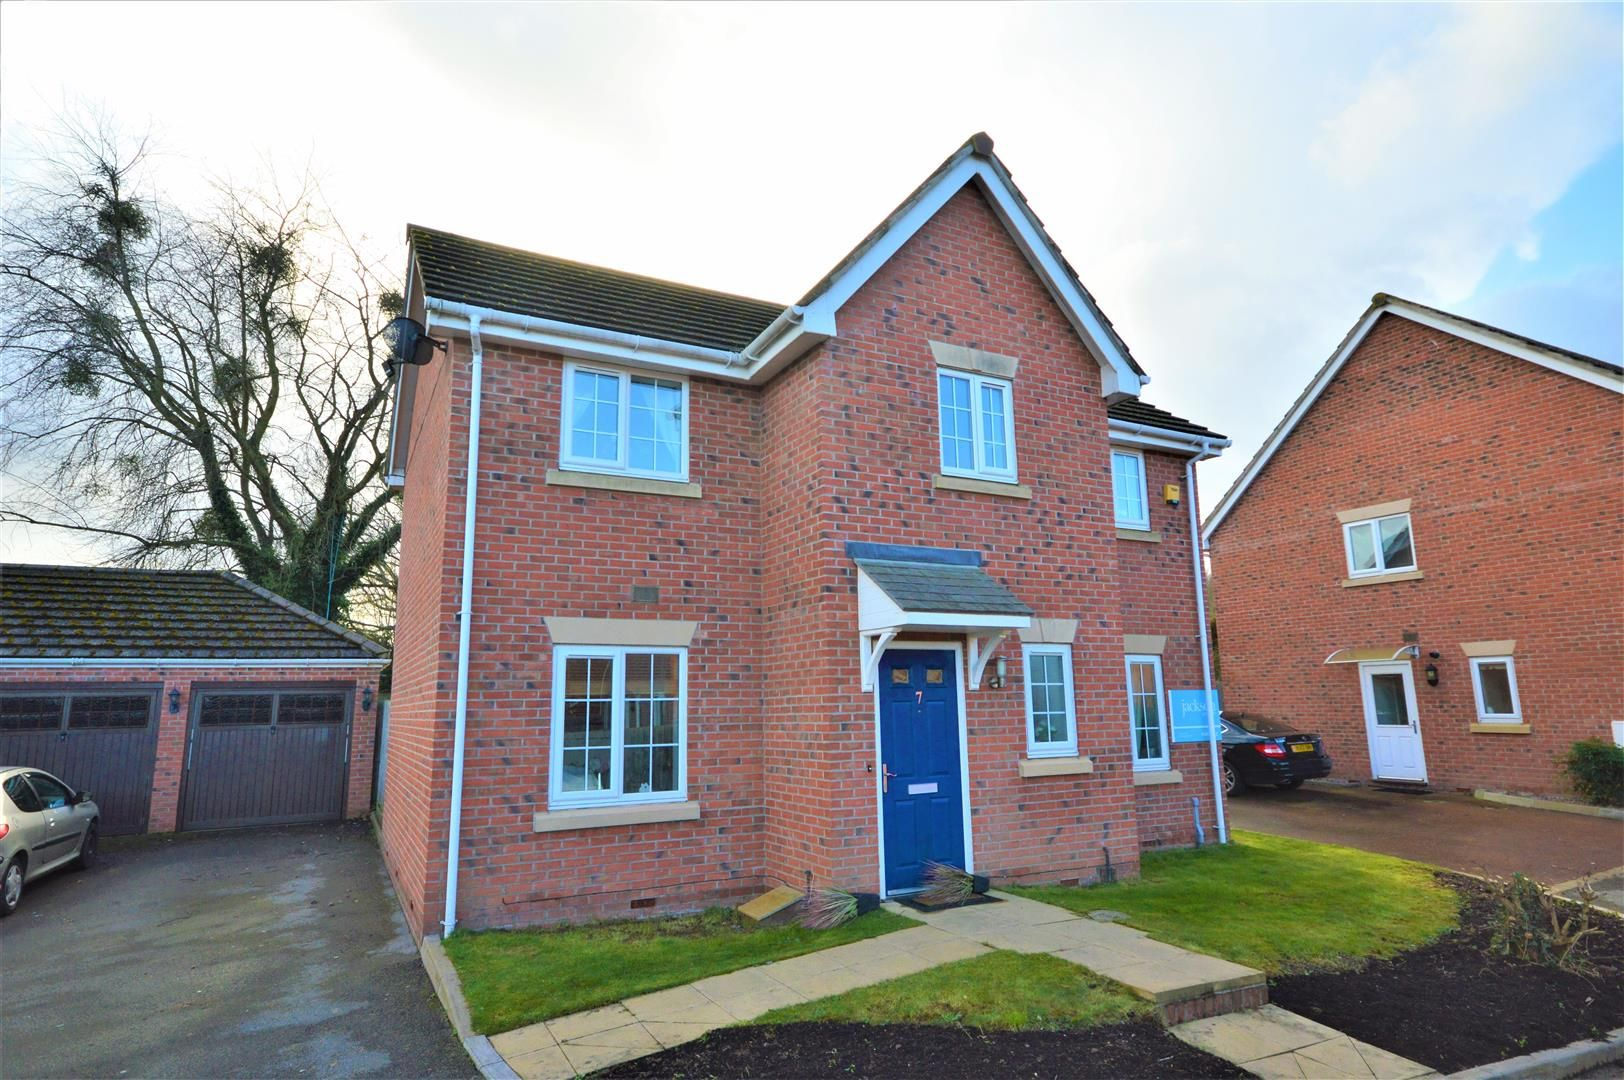 3 bed detached for sale in Hereford  - Property Image 4